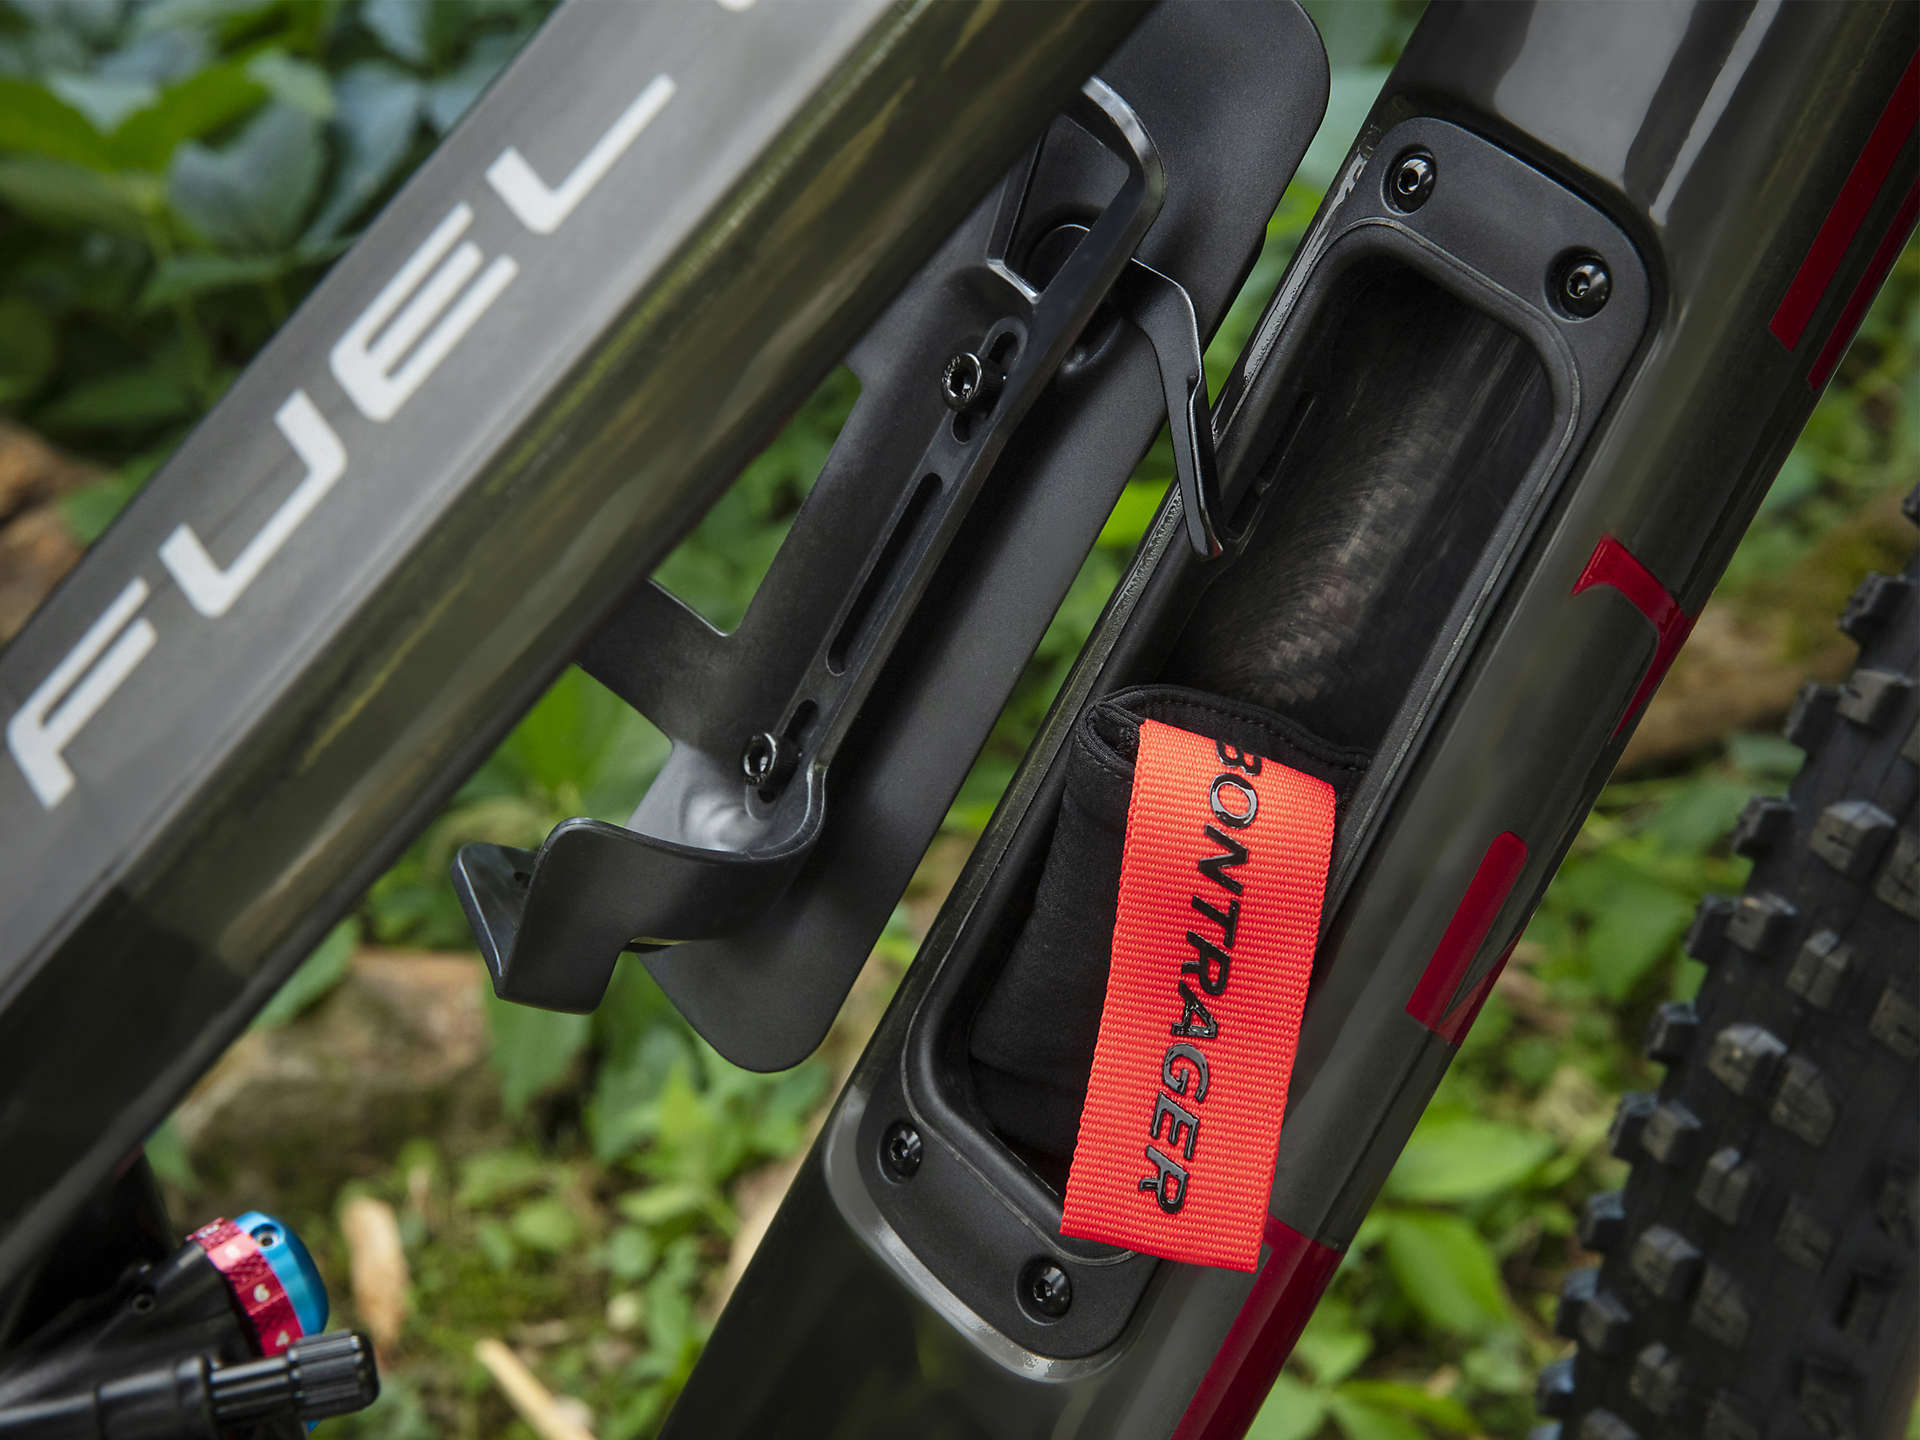 2020 Trek Fuel EX Gets Longer, Slacker, and (Mostly) Expensiver; Adds Internal Frame Storage - Singletracks Mountain Bike News